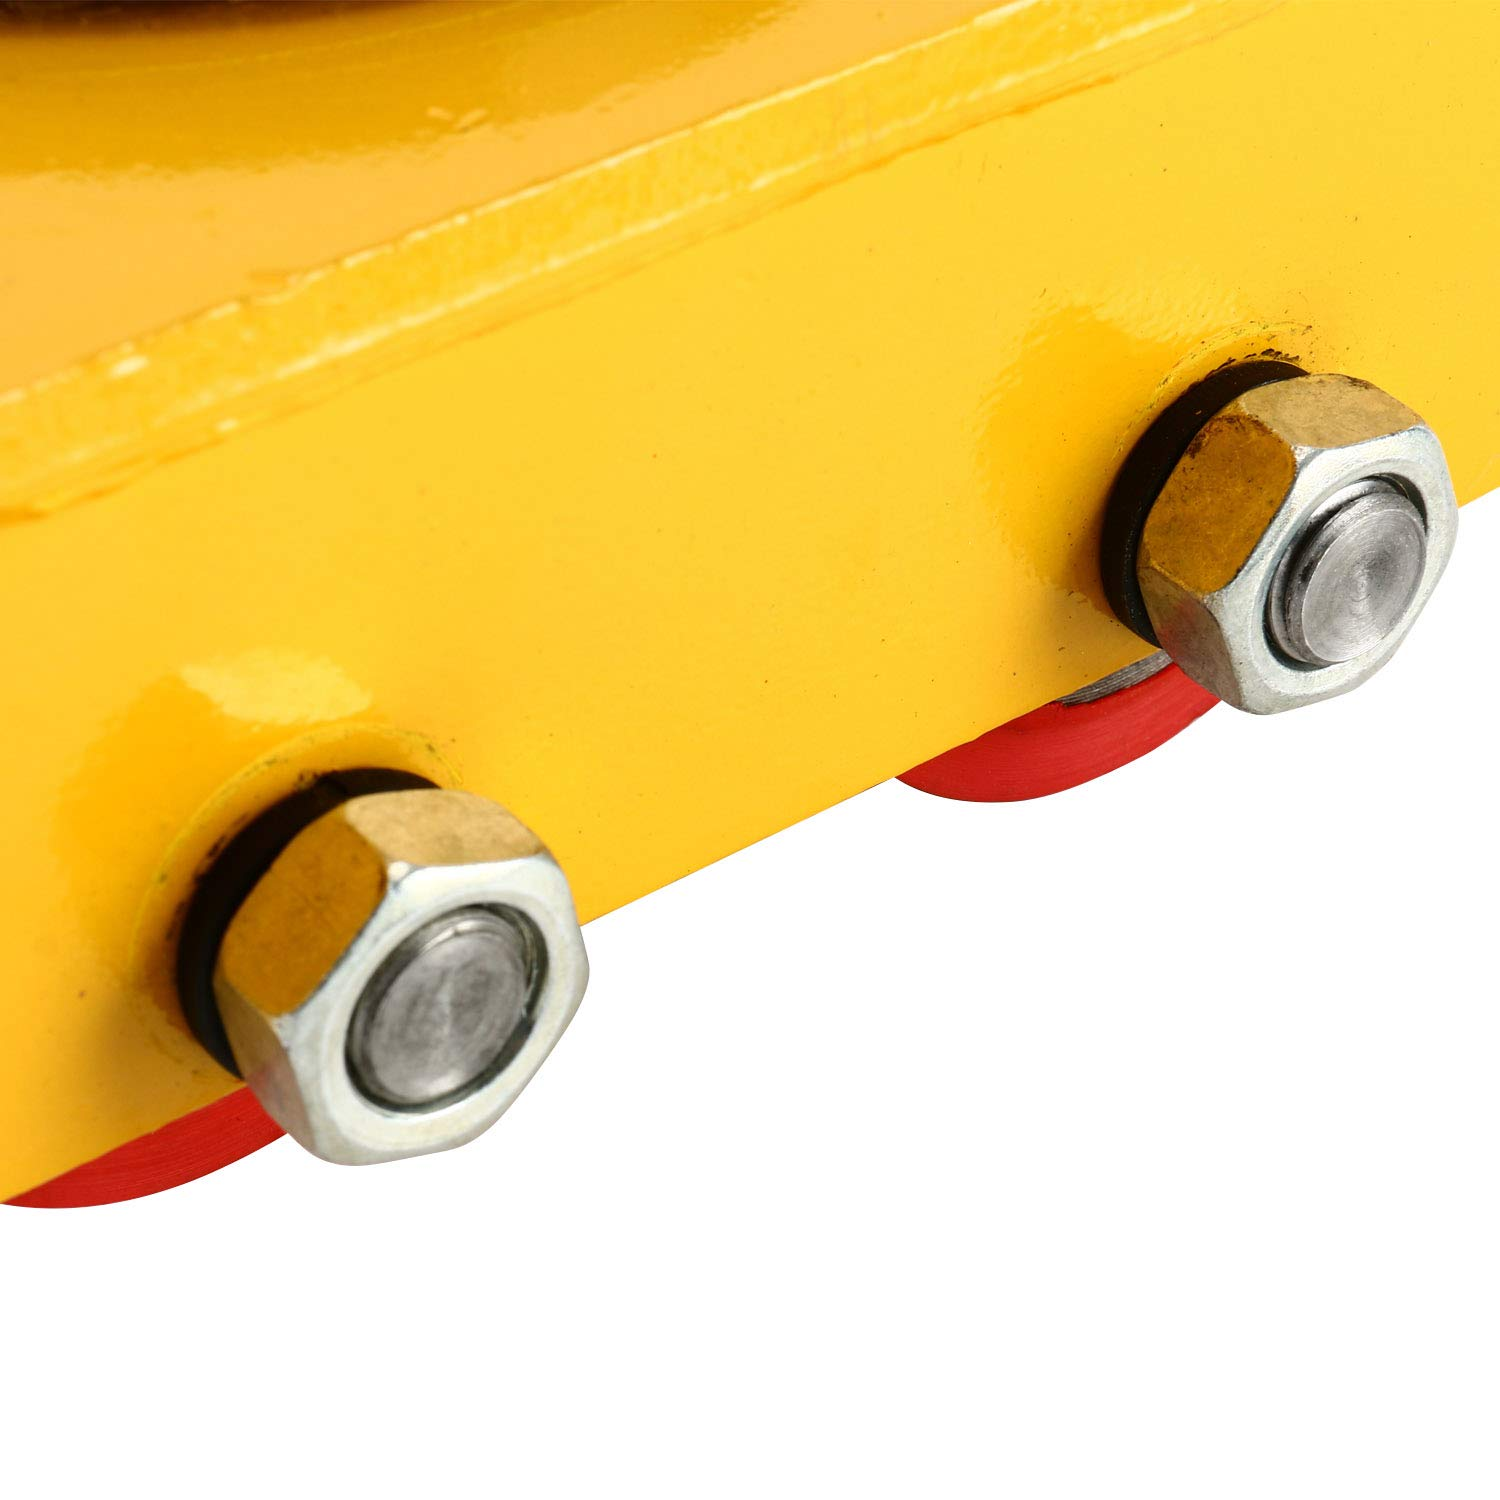 YaeTek Industrial Machinery Mover 13200 lbs 6 Tons Machinery Skate Dolly with 4 Rollers Cap 360 Degree Rotation (Yellow) by YAE TEK (Image #9)